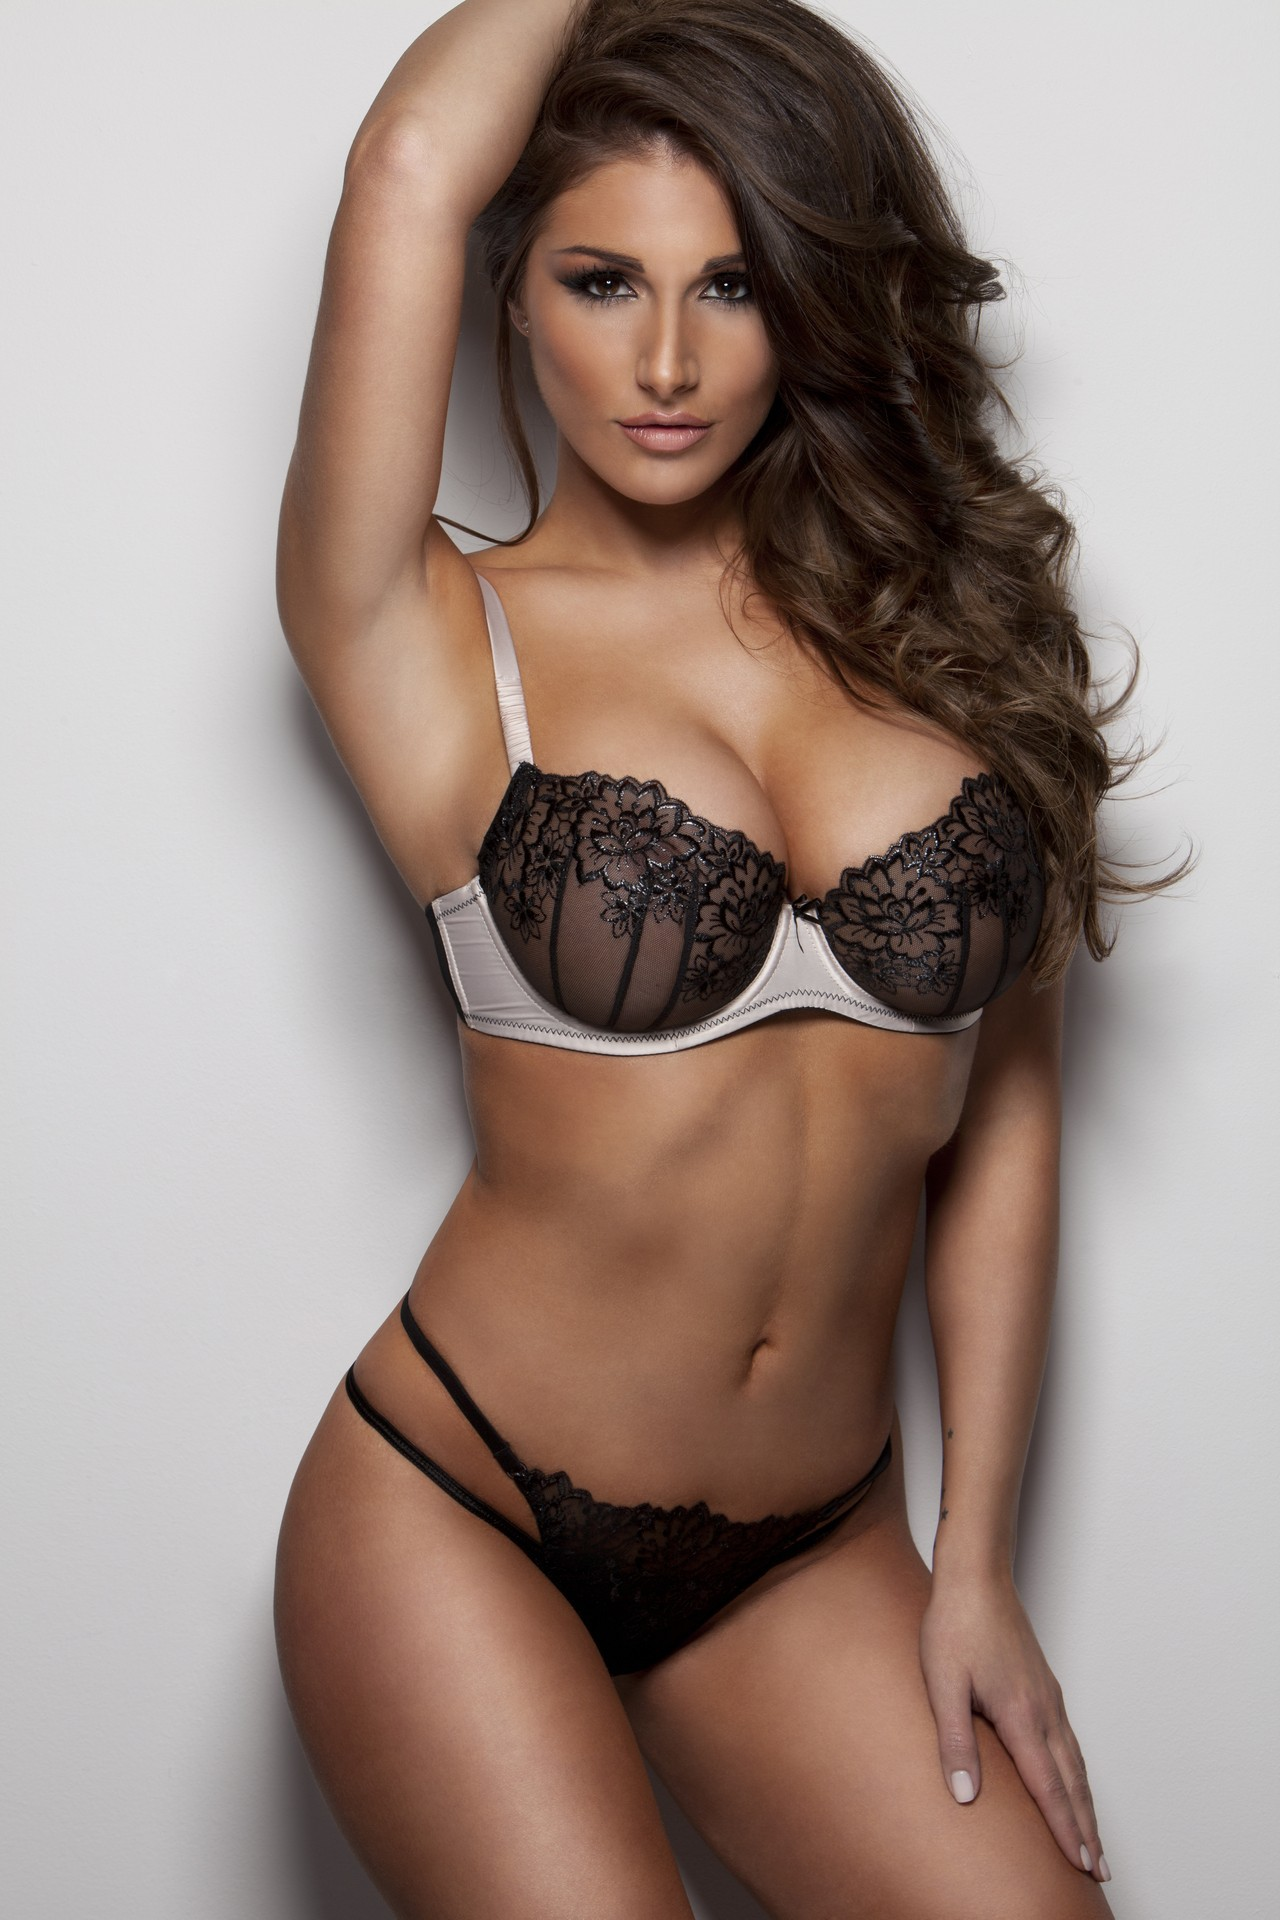 Lucy Pinder Iphone